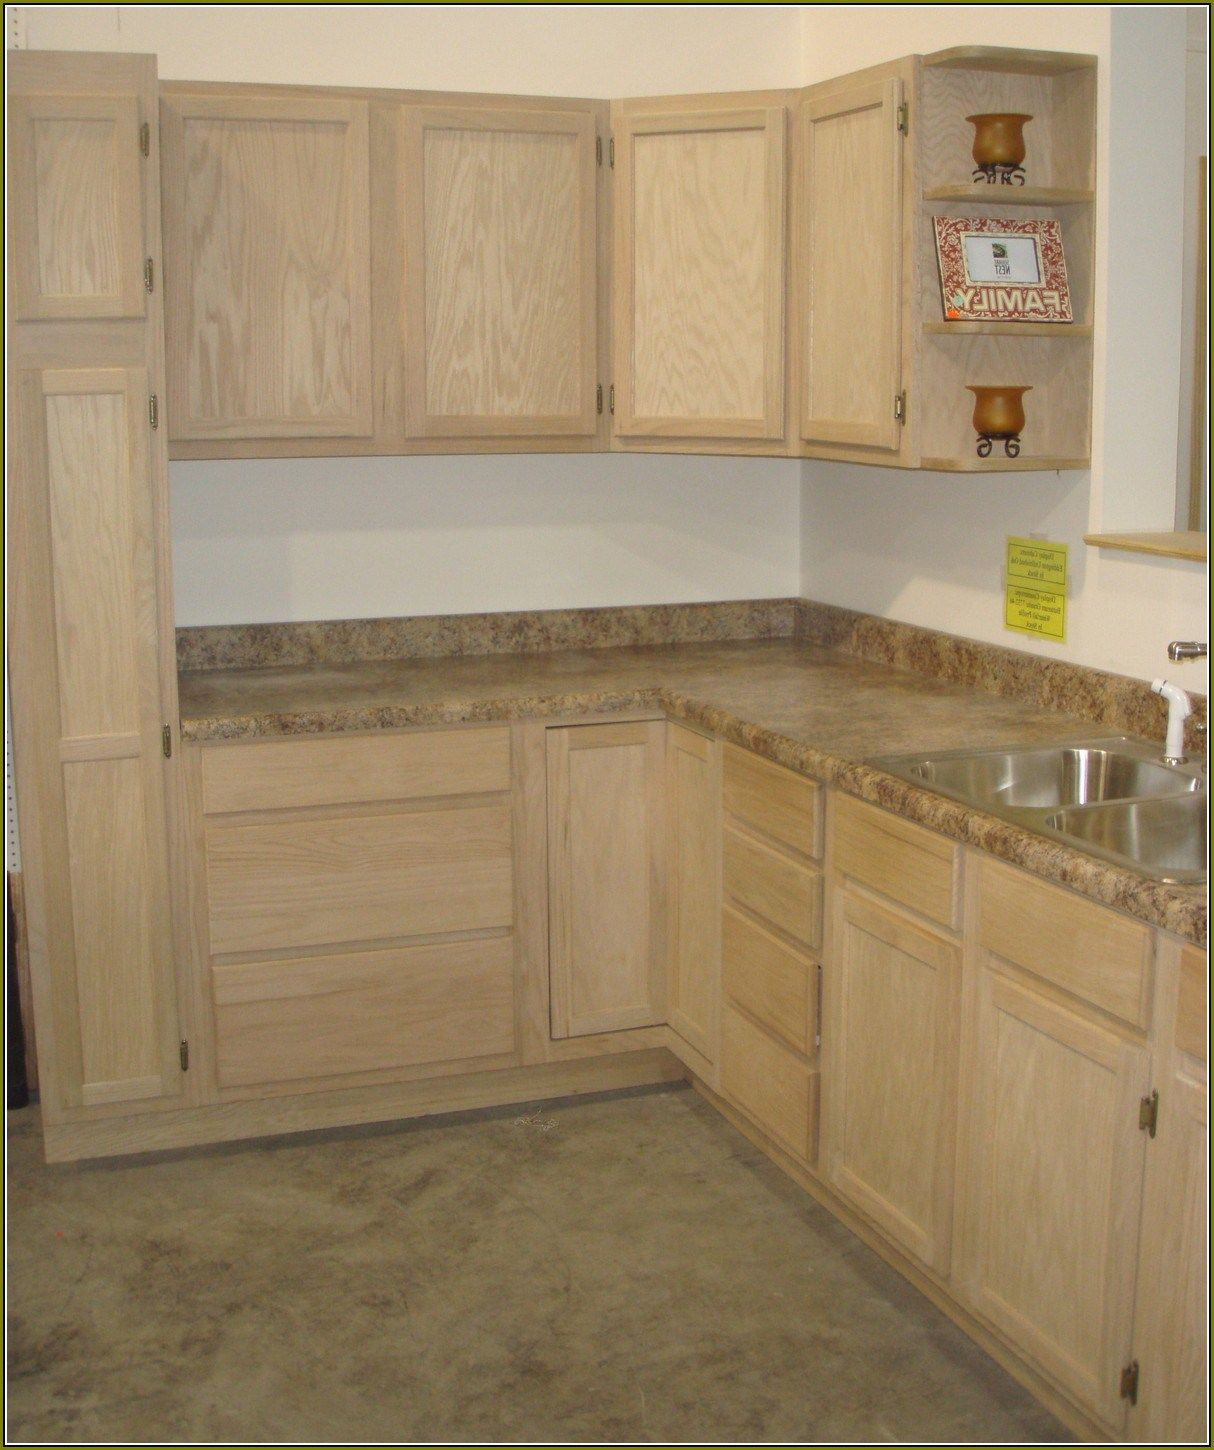 assembled kitchen cabinets home improvements refference unfinished pine cabinets home depot kitchen cabinets assemble home depot lowes kitchen cabinets